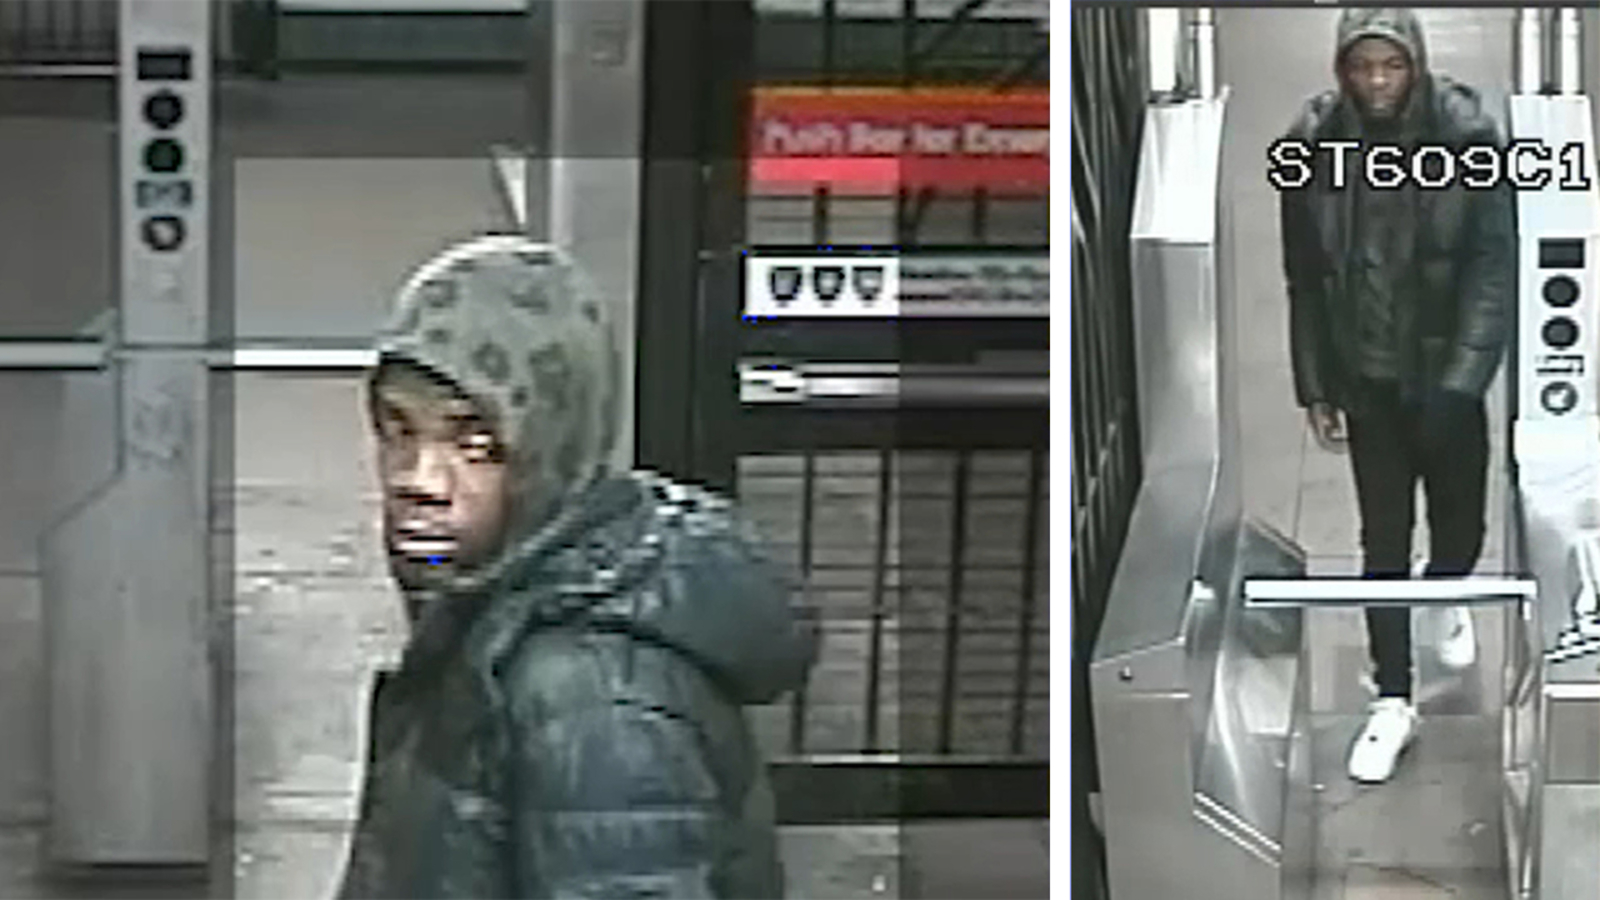 NYPD: Man gropes 3 women in 30-minute span in Manhattan